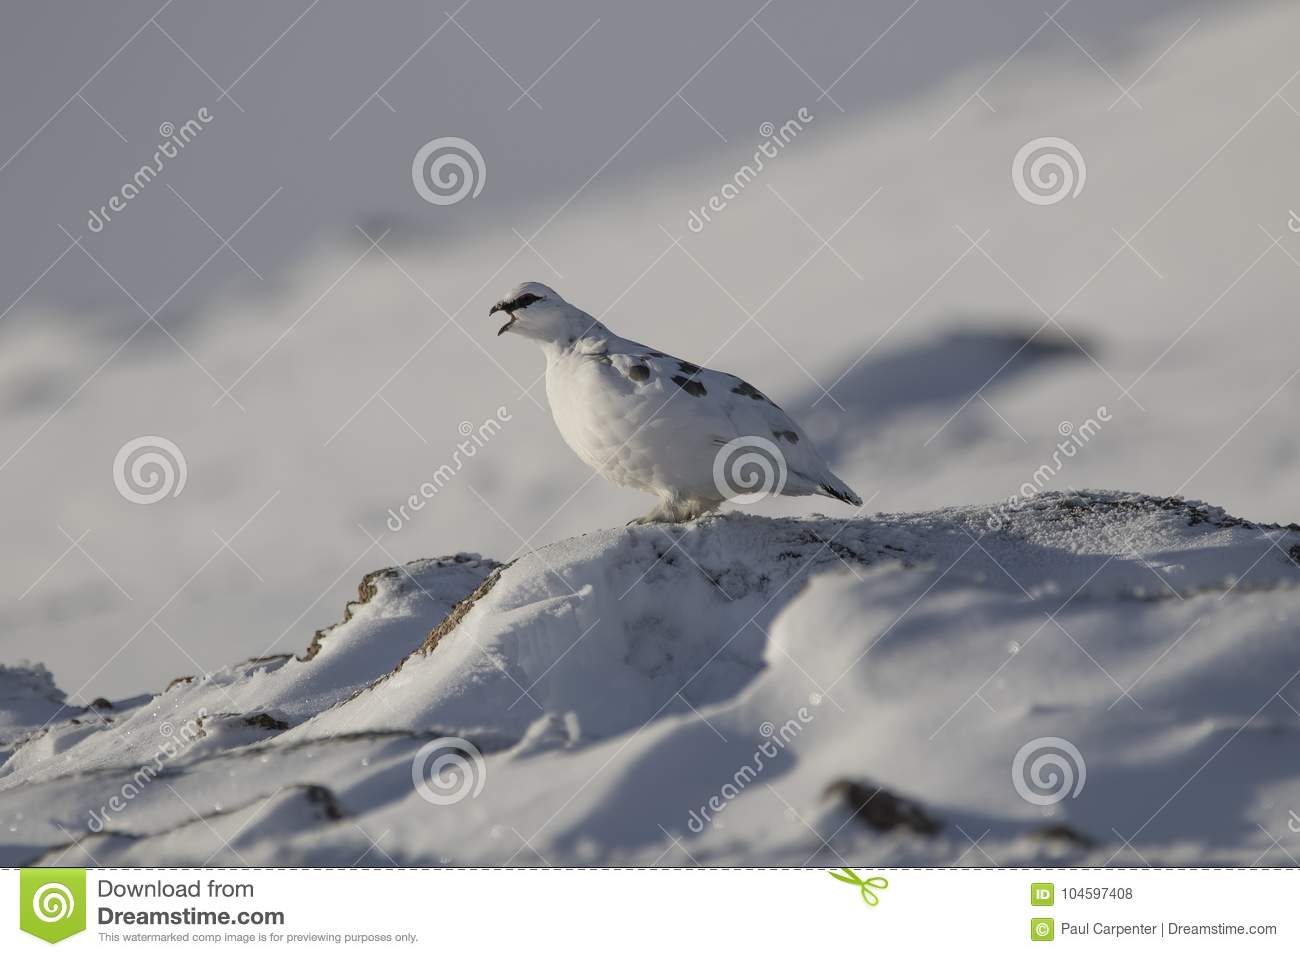 Ptarmigan, Lagopus muta, close up portrait while sitting, laying on snow during winter in winter/summer coat during autumn/wi